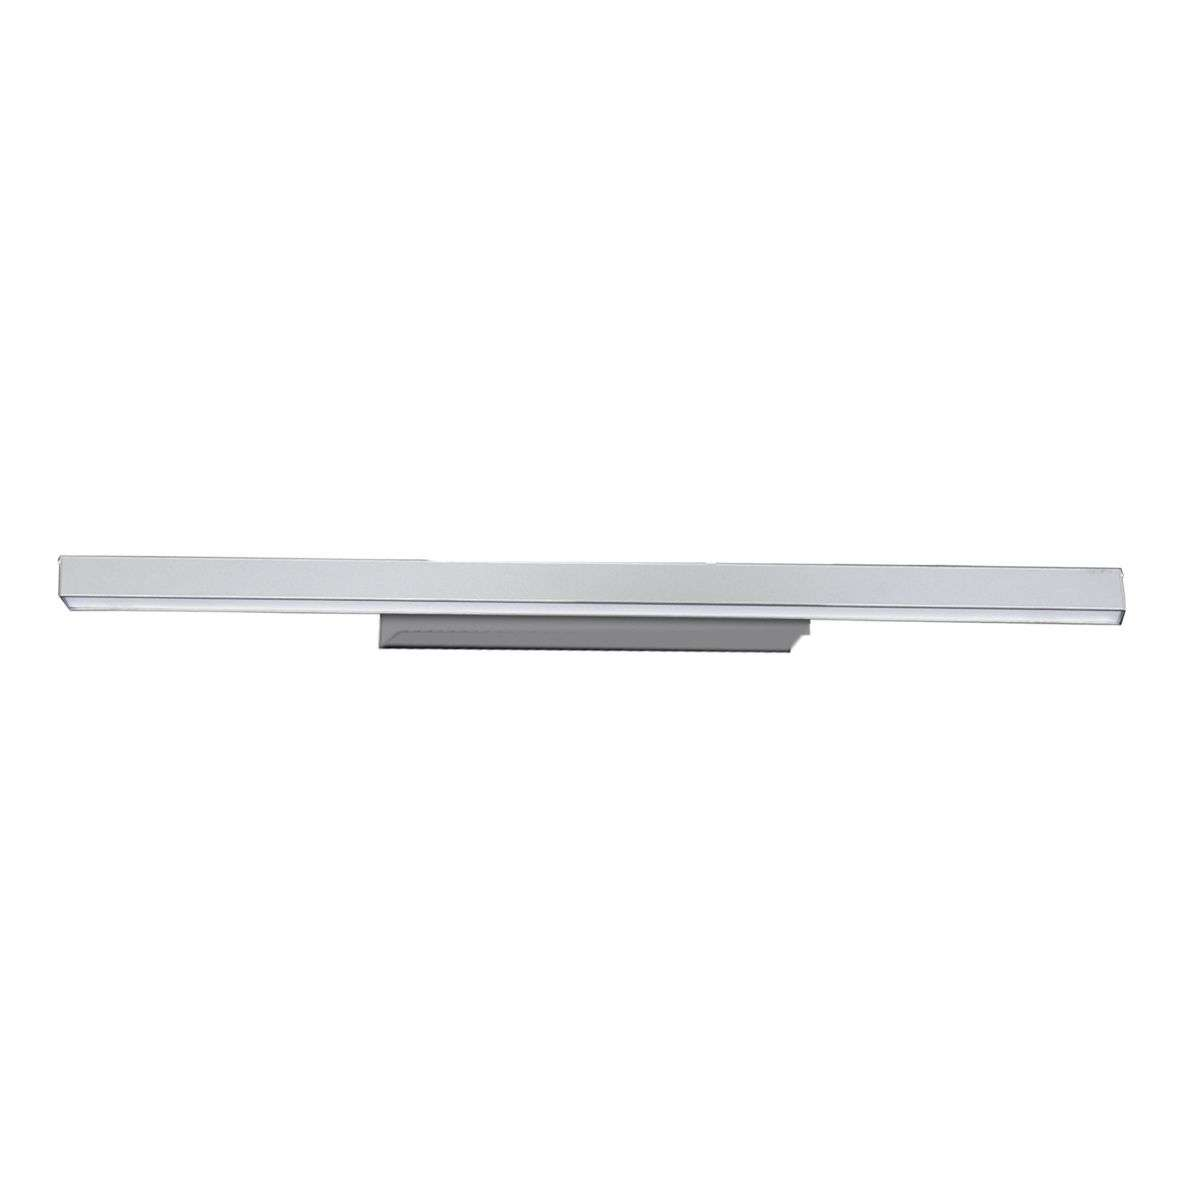 Applique aluminium LED NILA-7516018-31